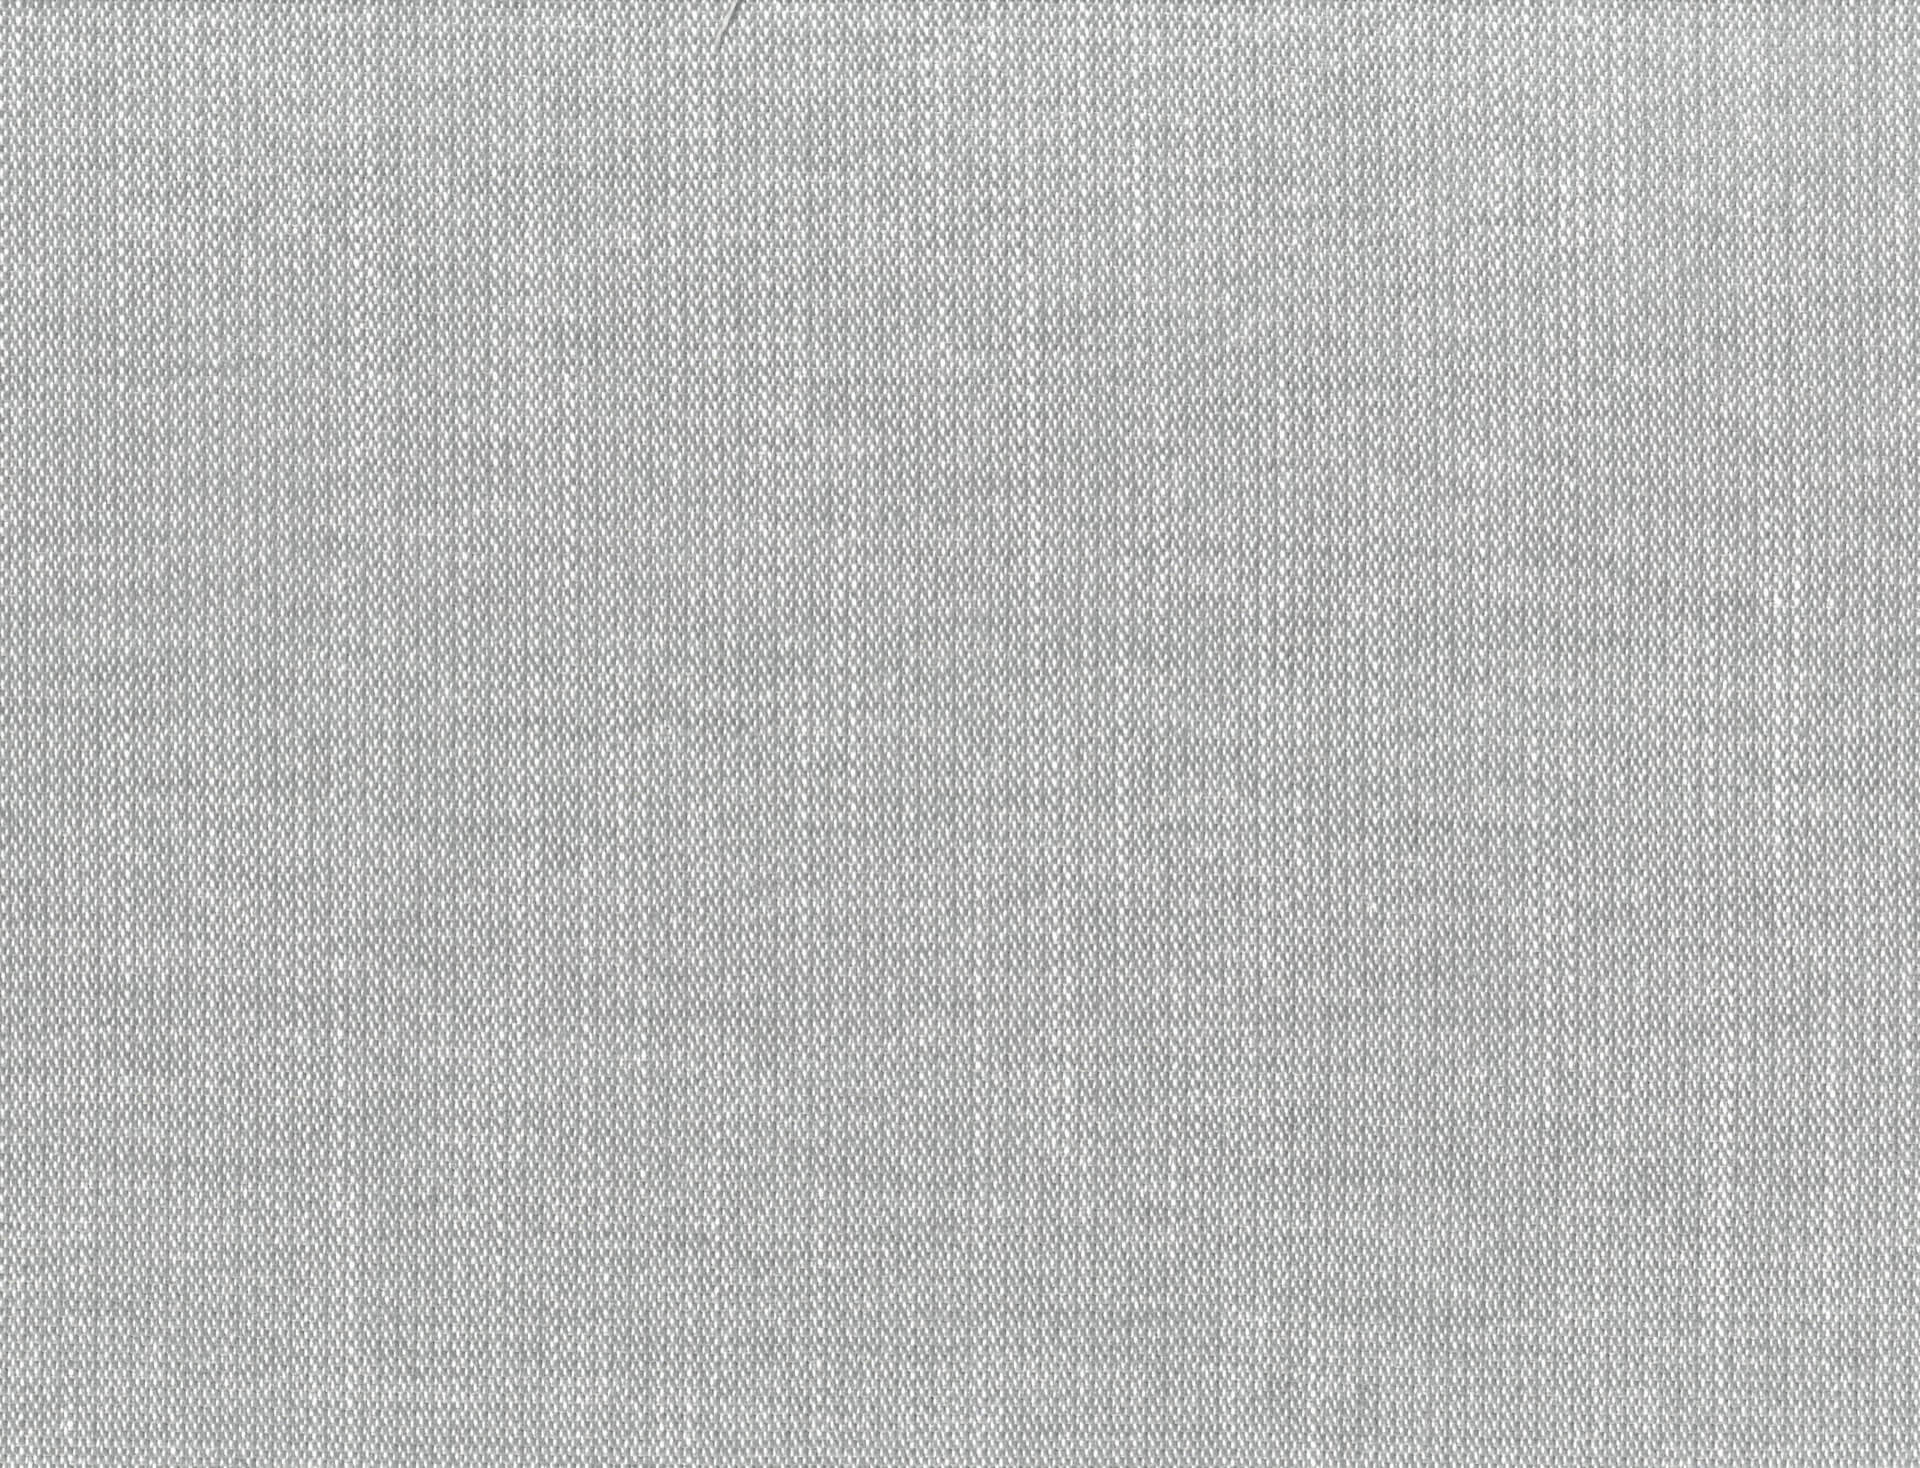 Nori Fabric Light Gray